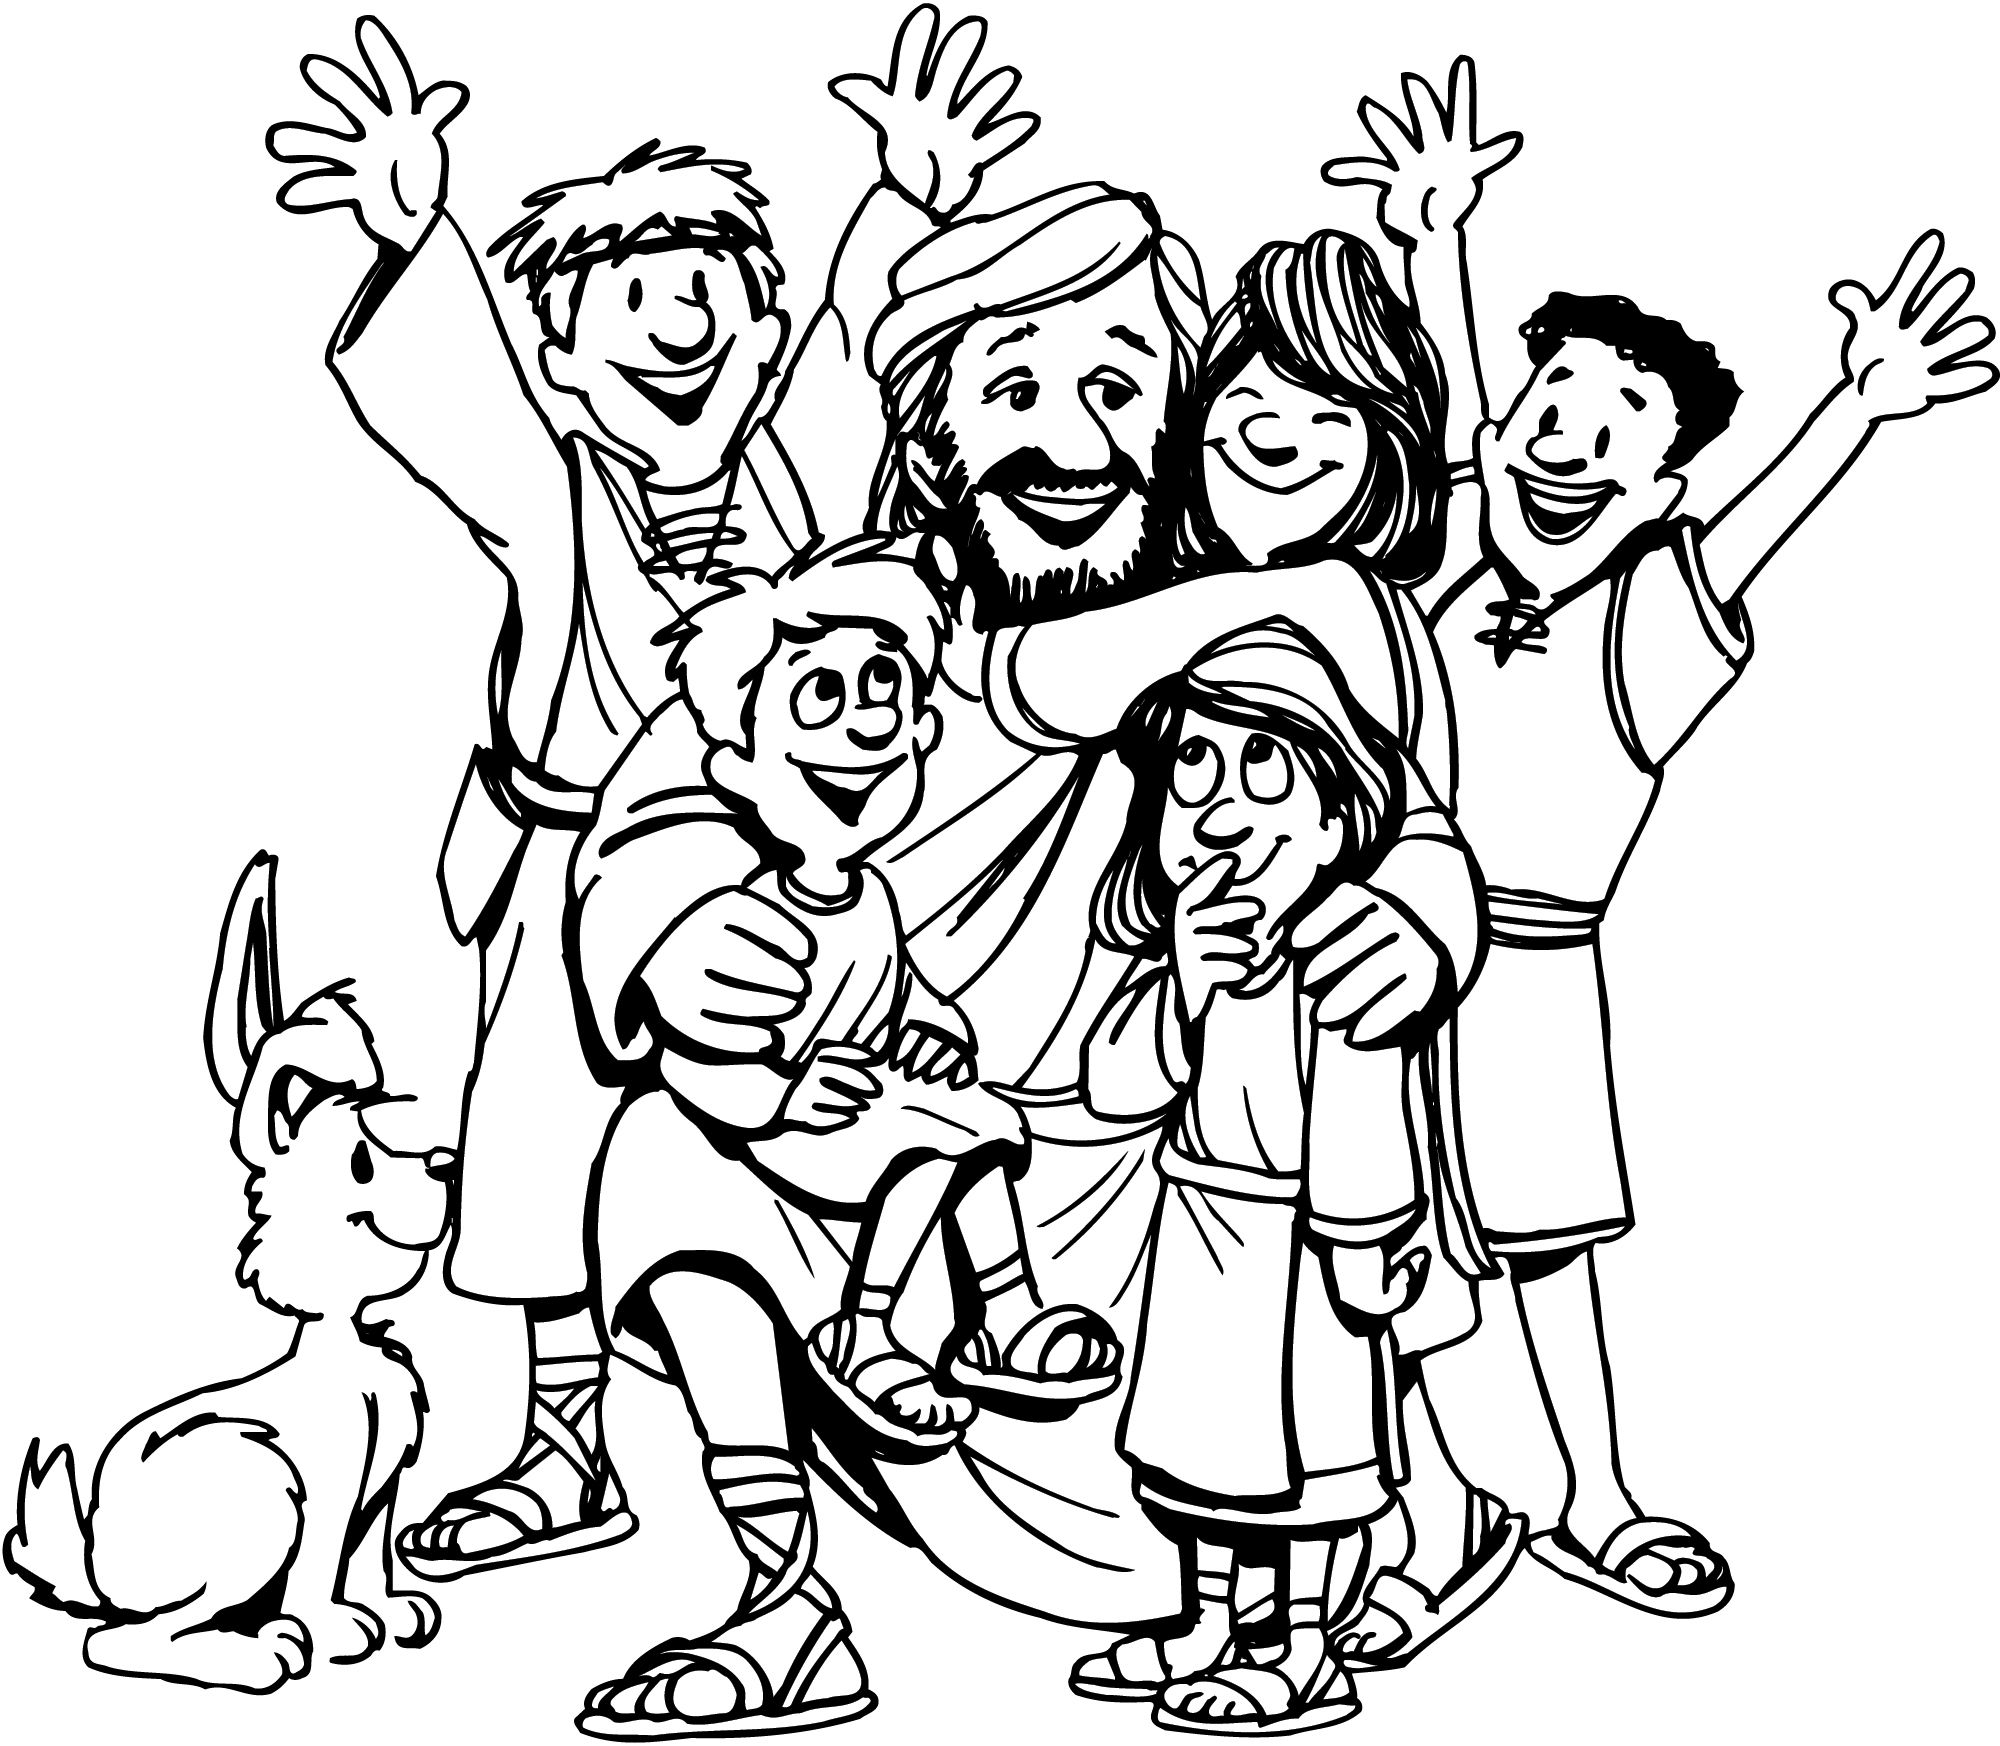 Jesus Loves The Little Children Coloring Page Az Coloring Pages Jesus Coloring Pages Bible Coloring Pages Bible Coloring